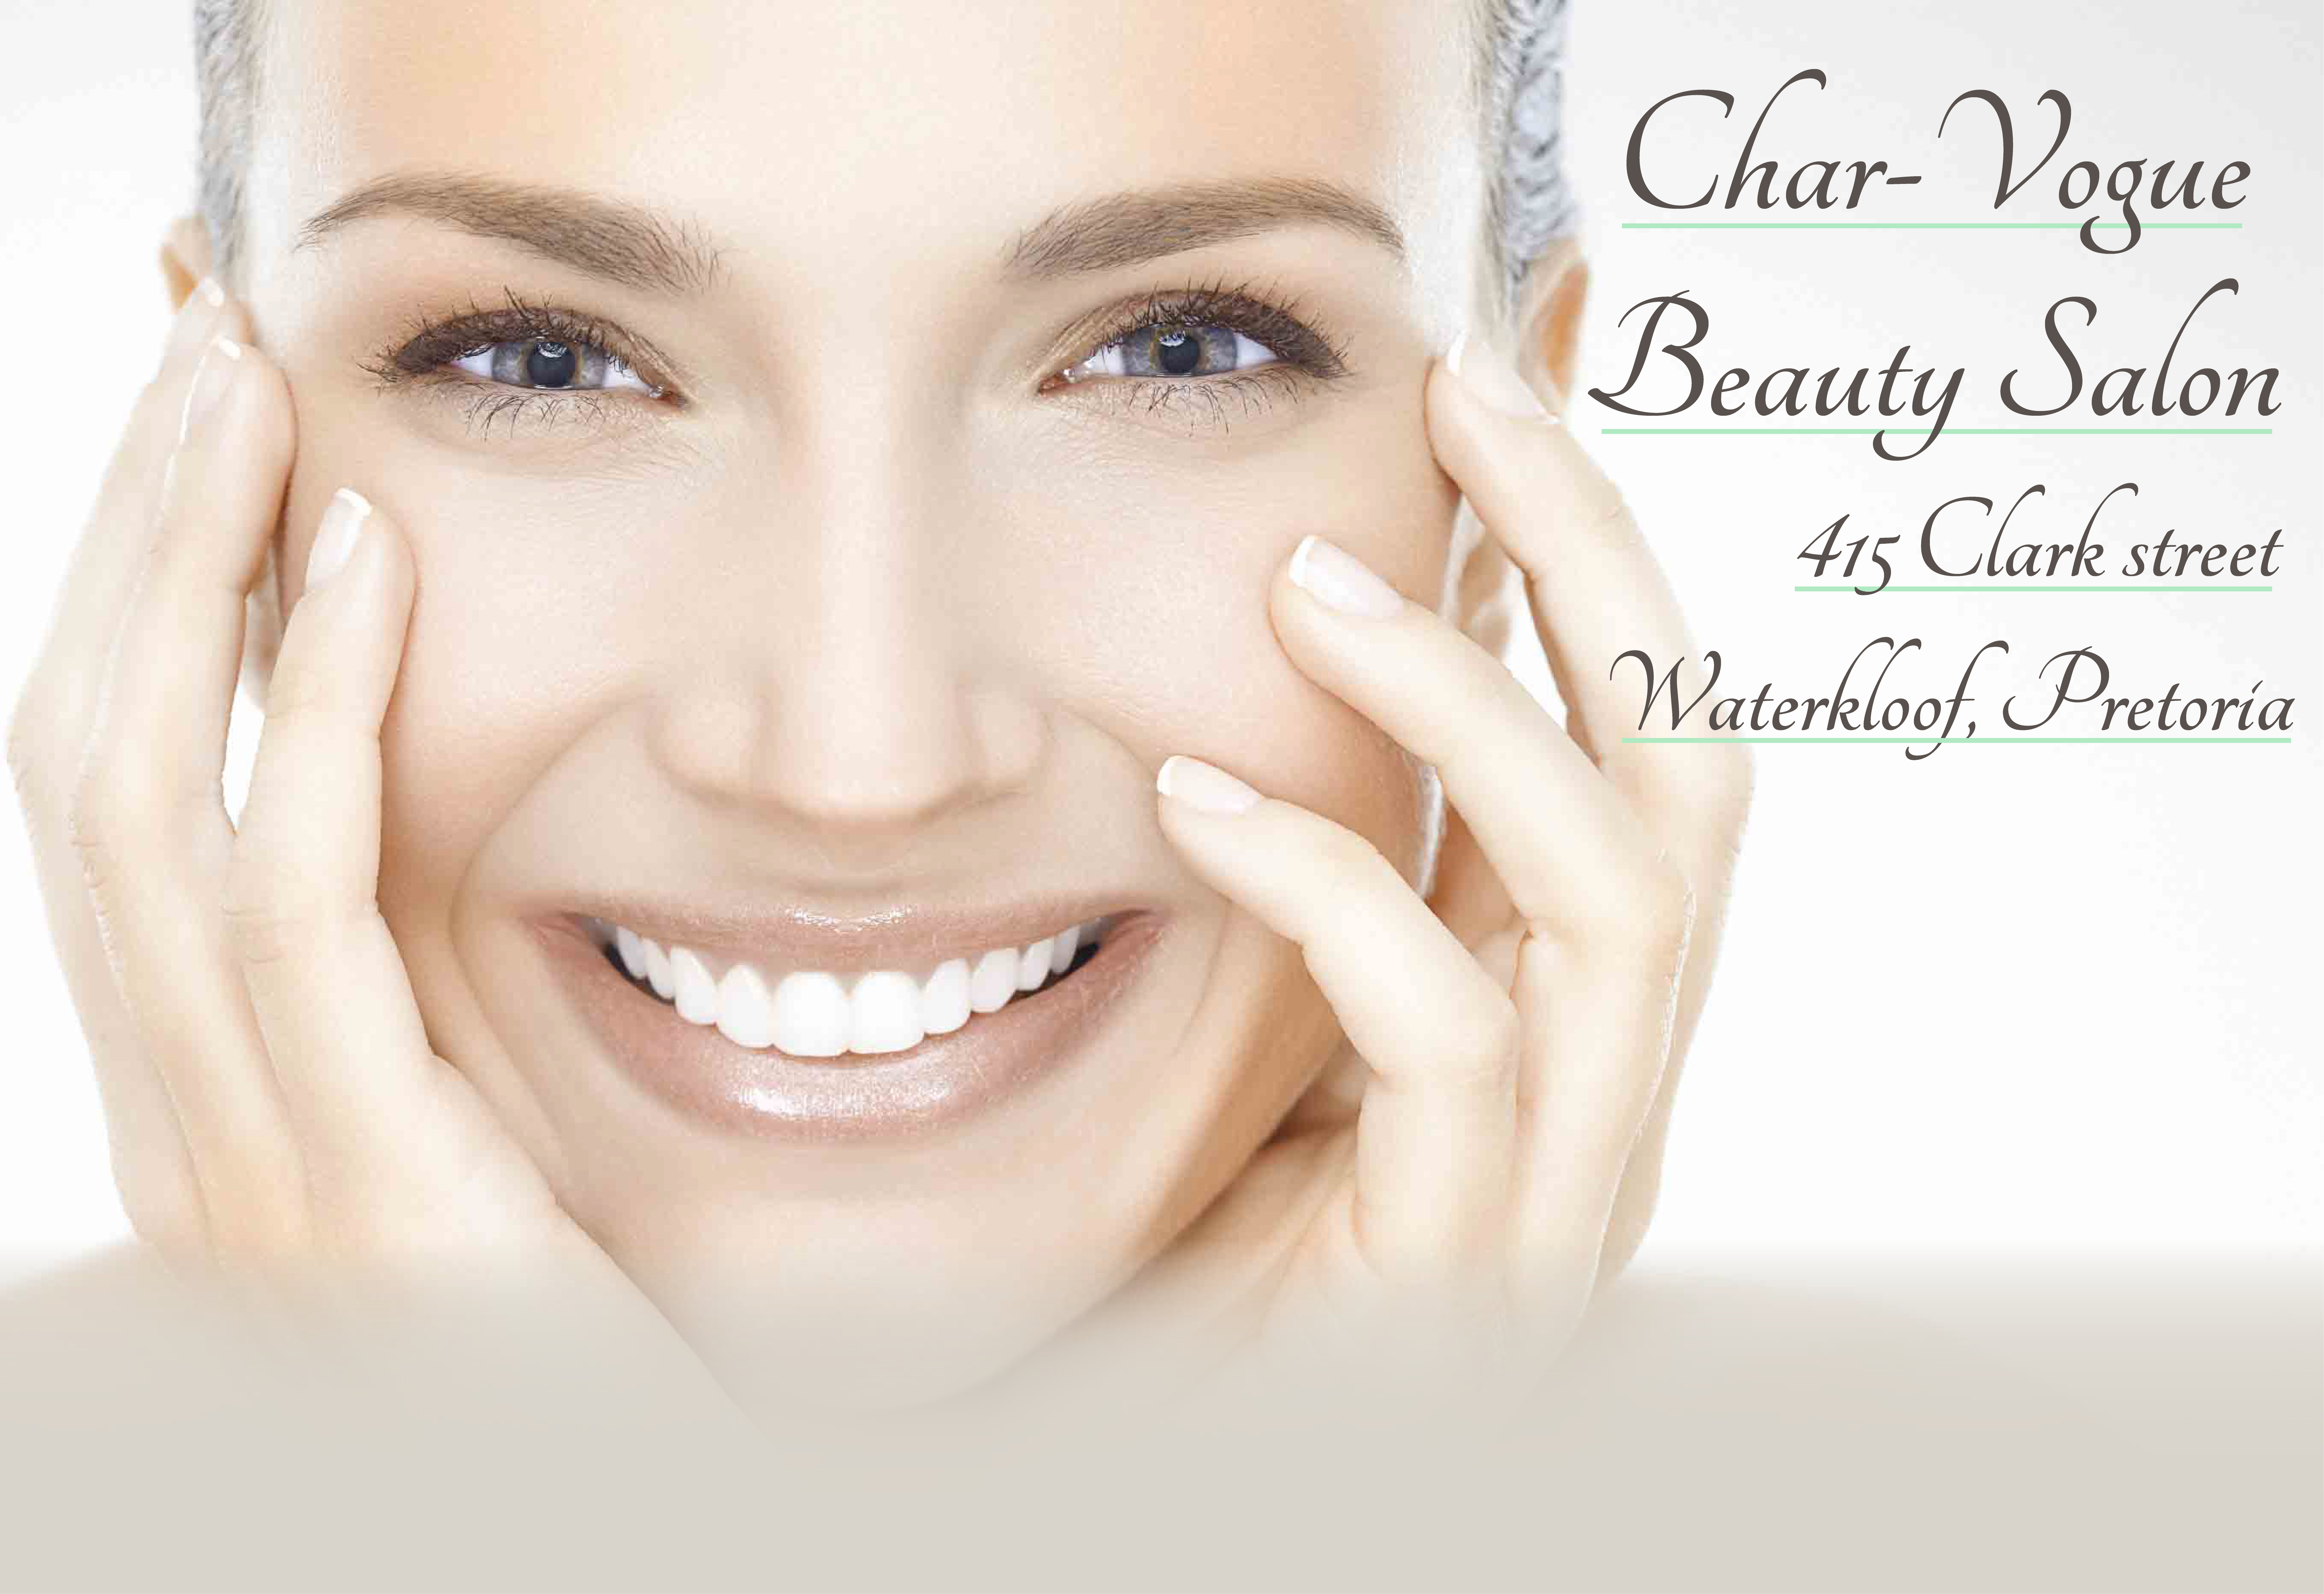 Banner image of woman illustrating beautiful skin